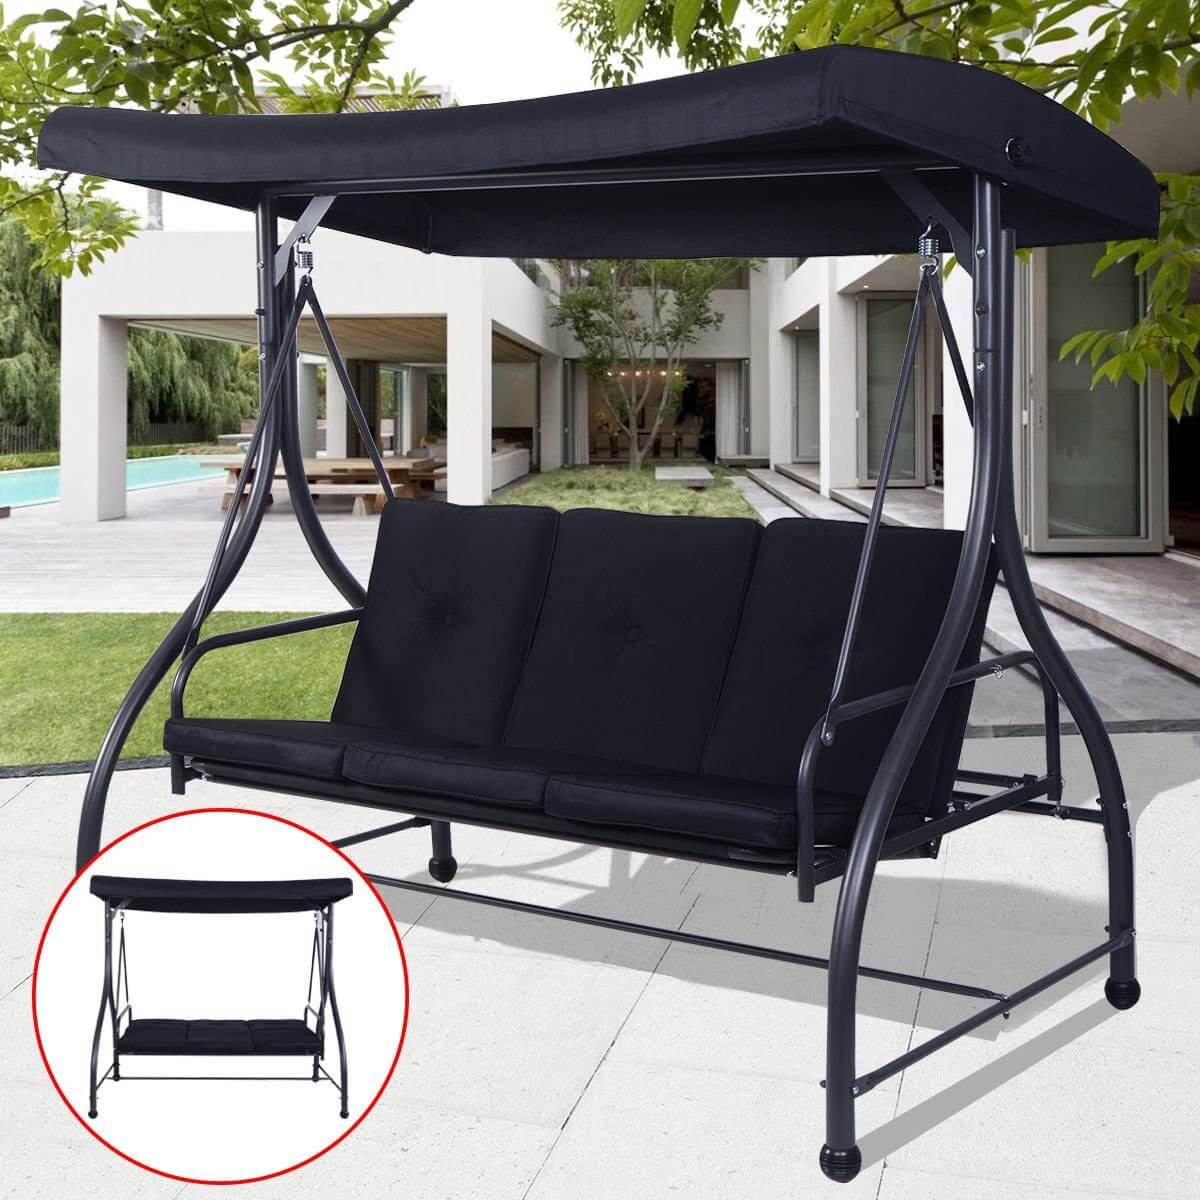 TANGKULA CONVERTING OUTDOOR SWING PATIO PORCH GARDEN SWING COMFORTABLE CUSHION SEATS WITH CANOPY